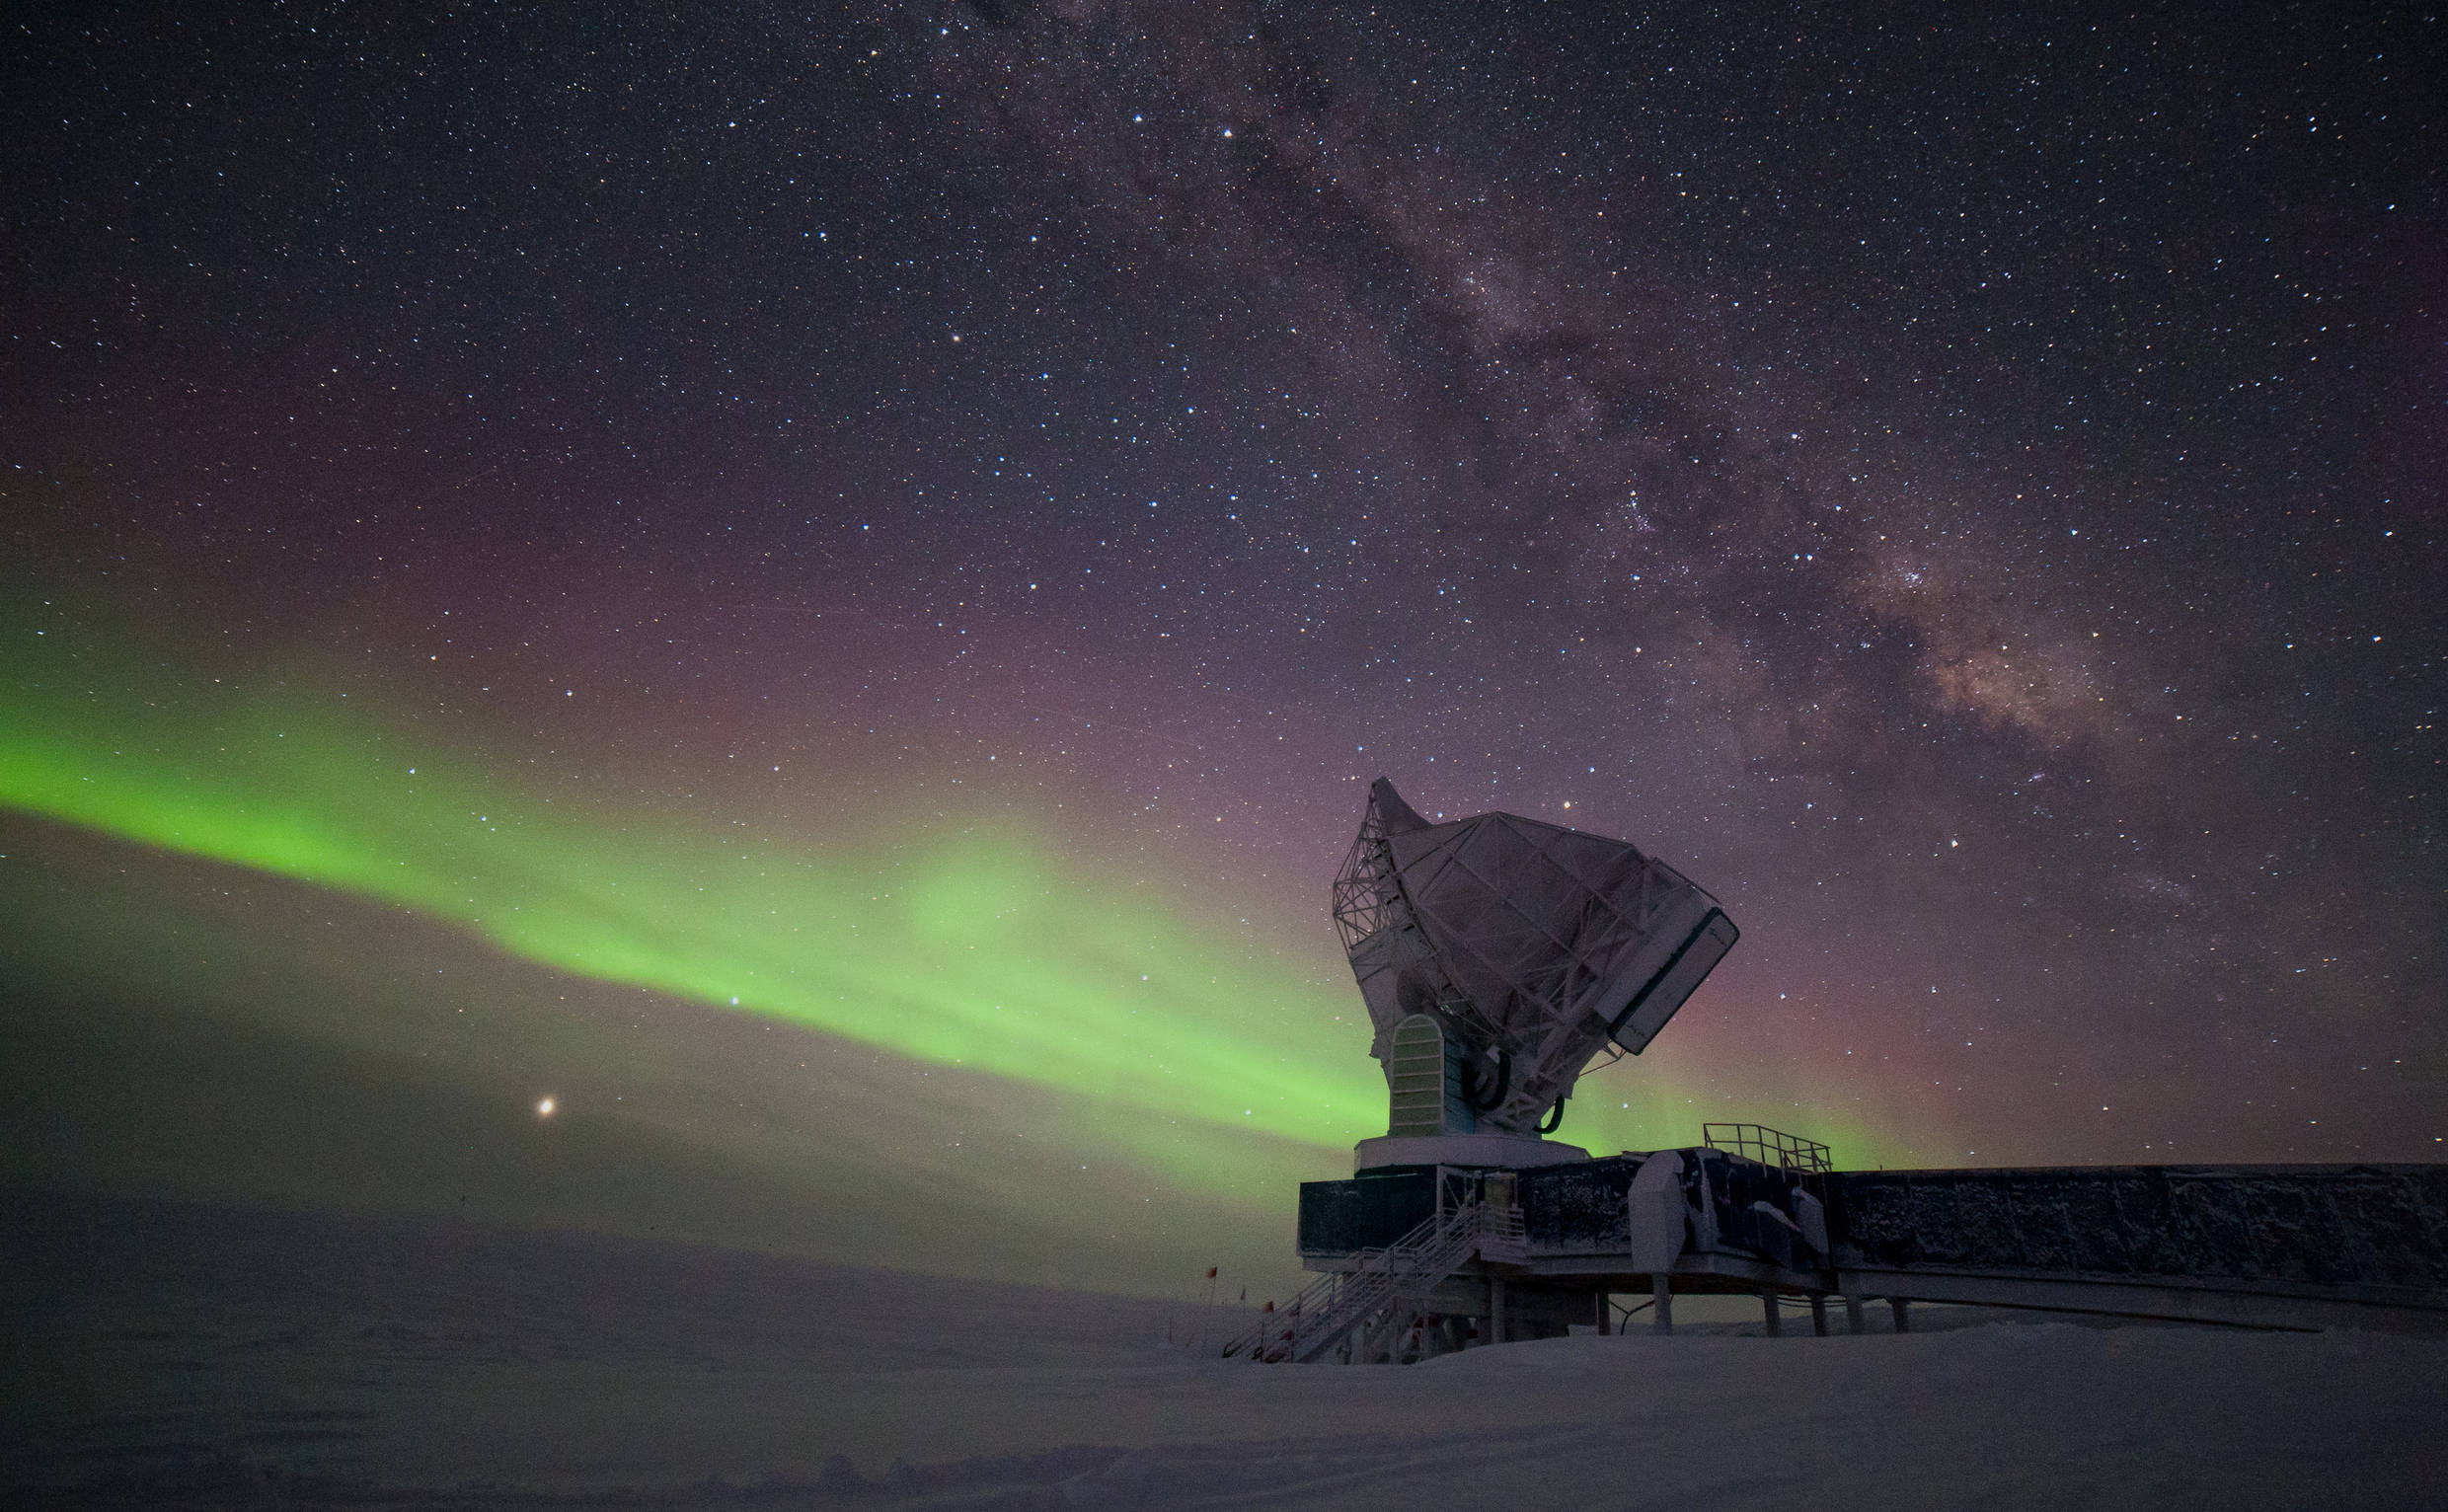 Taken in -60°C, this picture shows the South Pole Telescope illuminated by the Milky Way and some of the first aurora australis of the winter season 2017. Jupiter is brightly visible on the lower left, Saturn is to the right of the telescope dish.